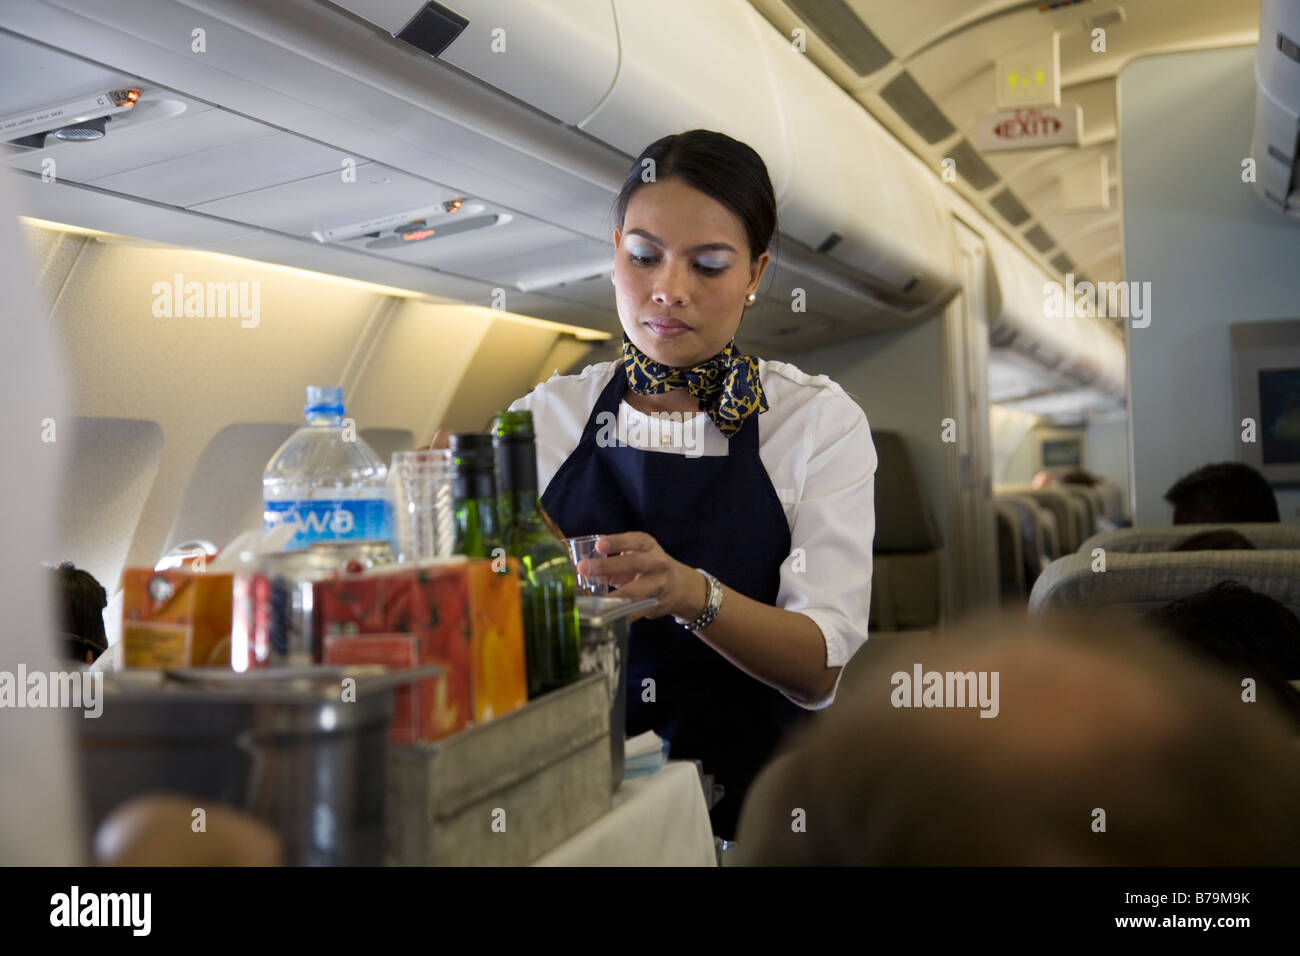 Drinking Alcohol Emirates